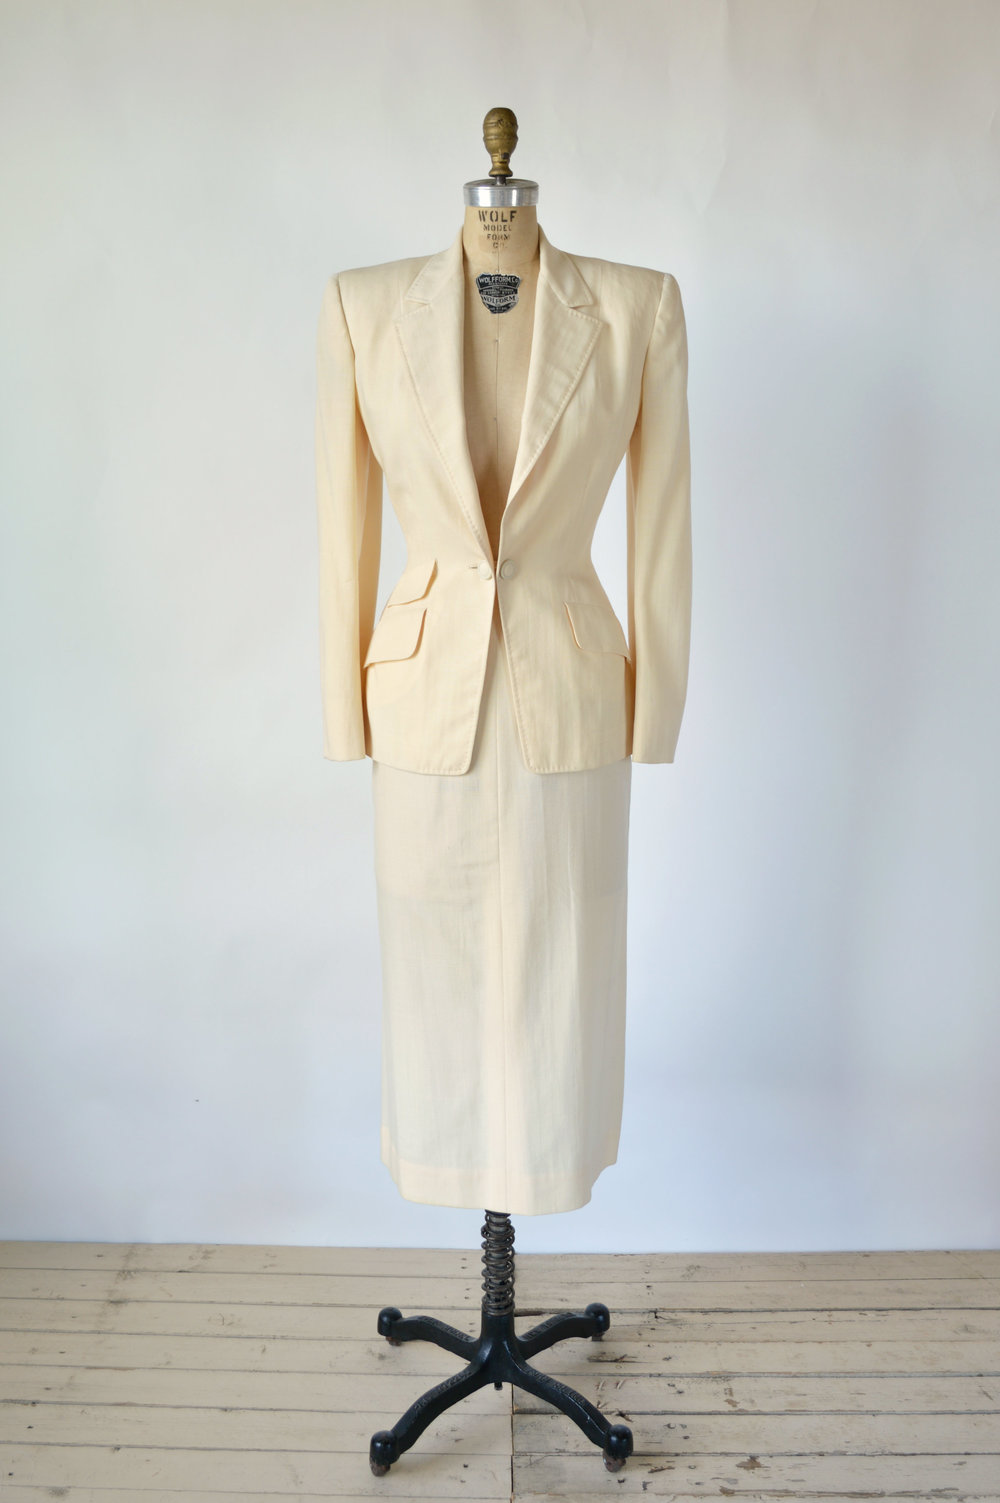 1940s Wedding Suit from Dalena Vintage